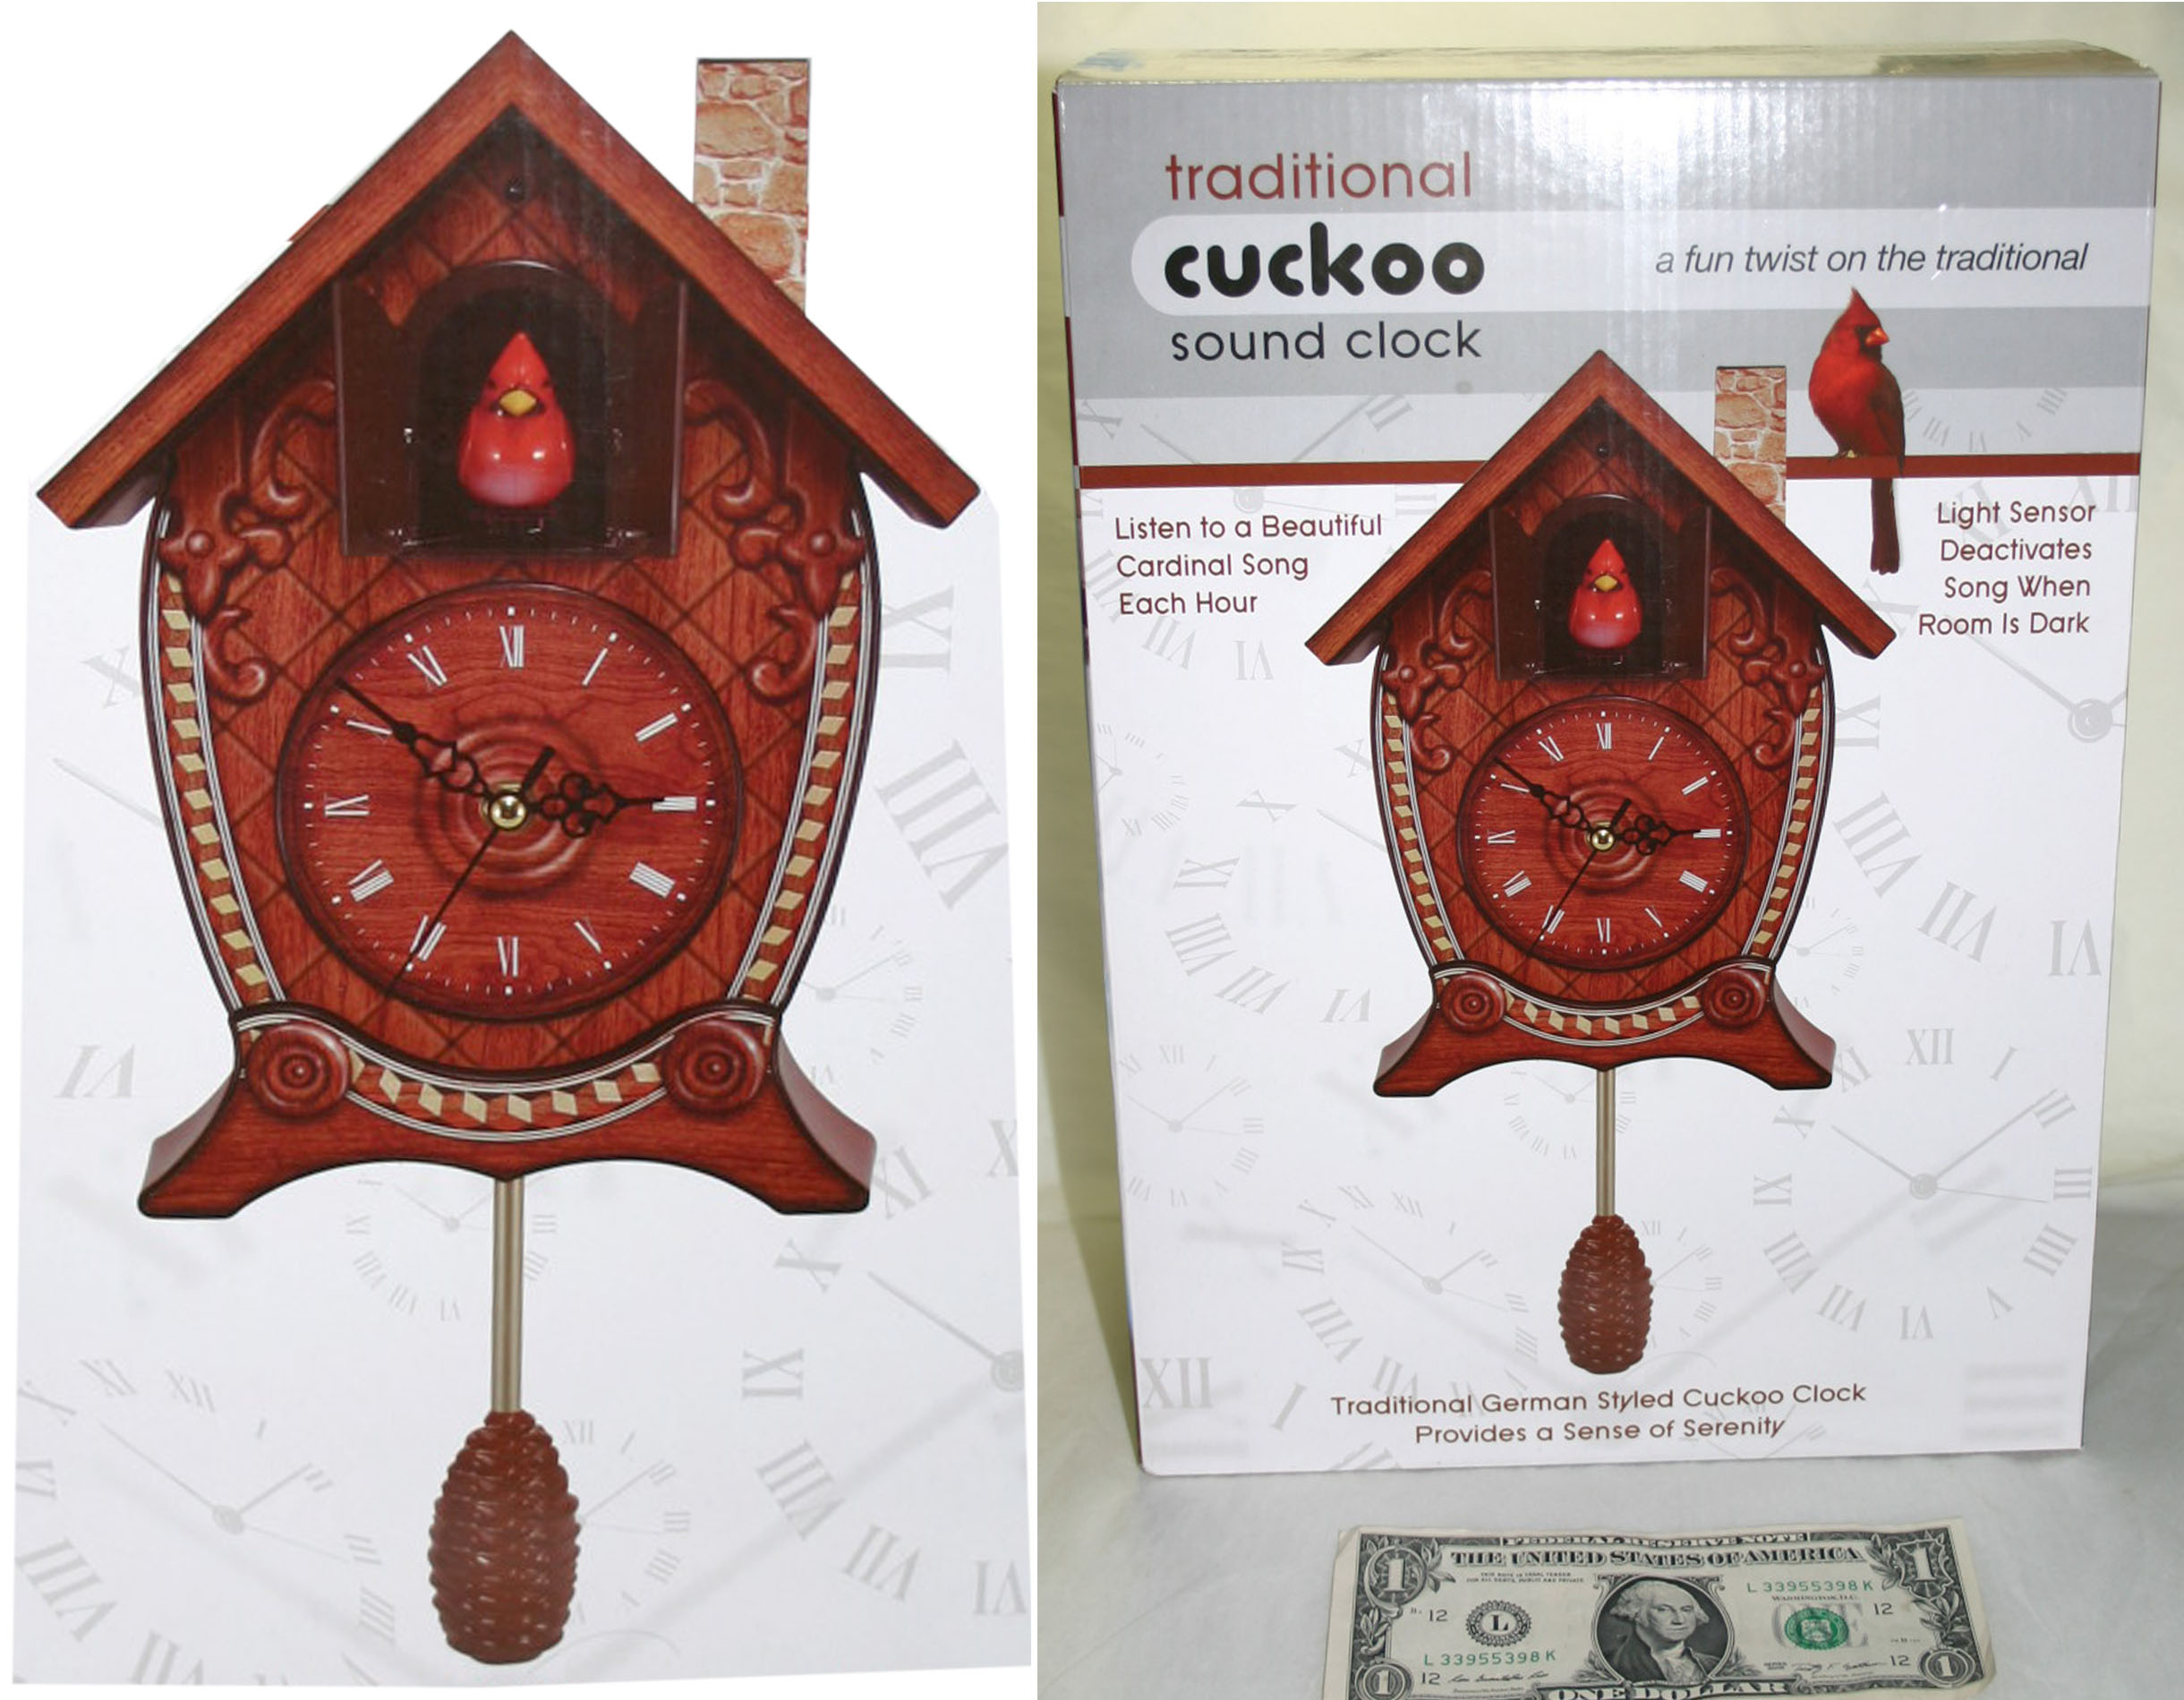 Traditional cuckoo sound clock cardinal bird song each hour wall mantel cabin ebay - Cuckoo bird clock sound ...